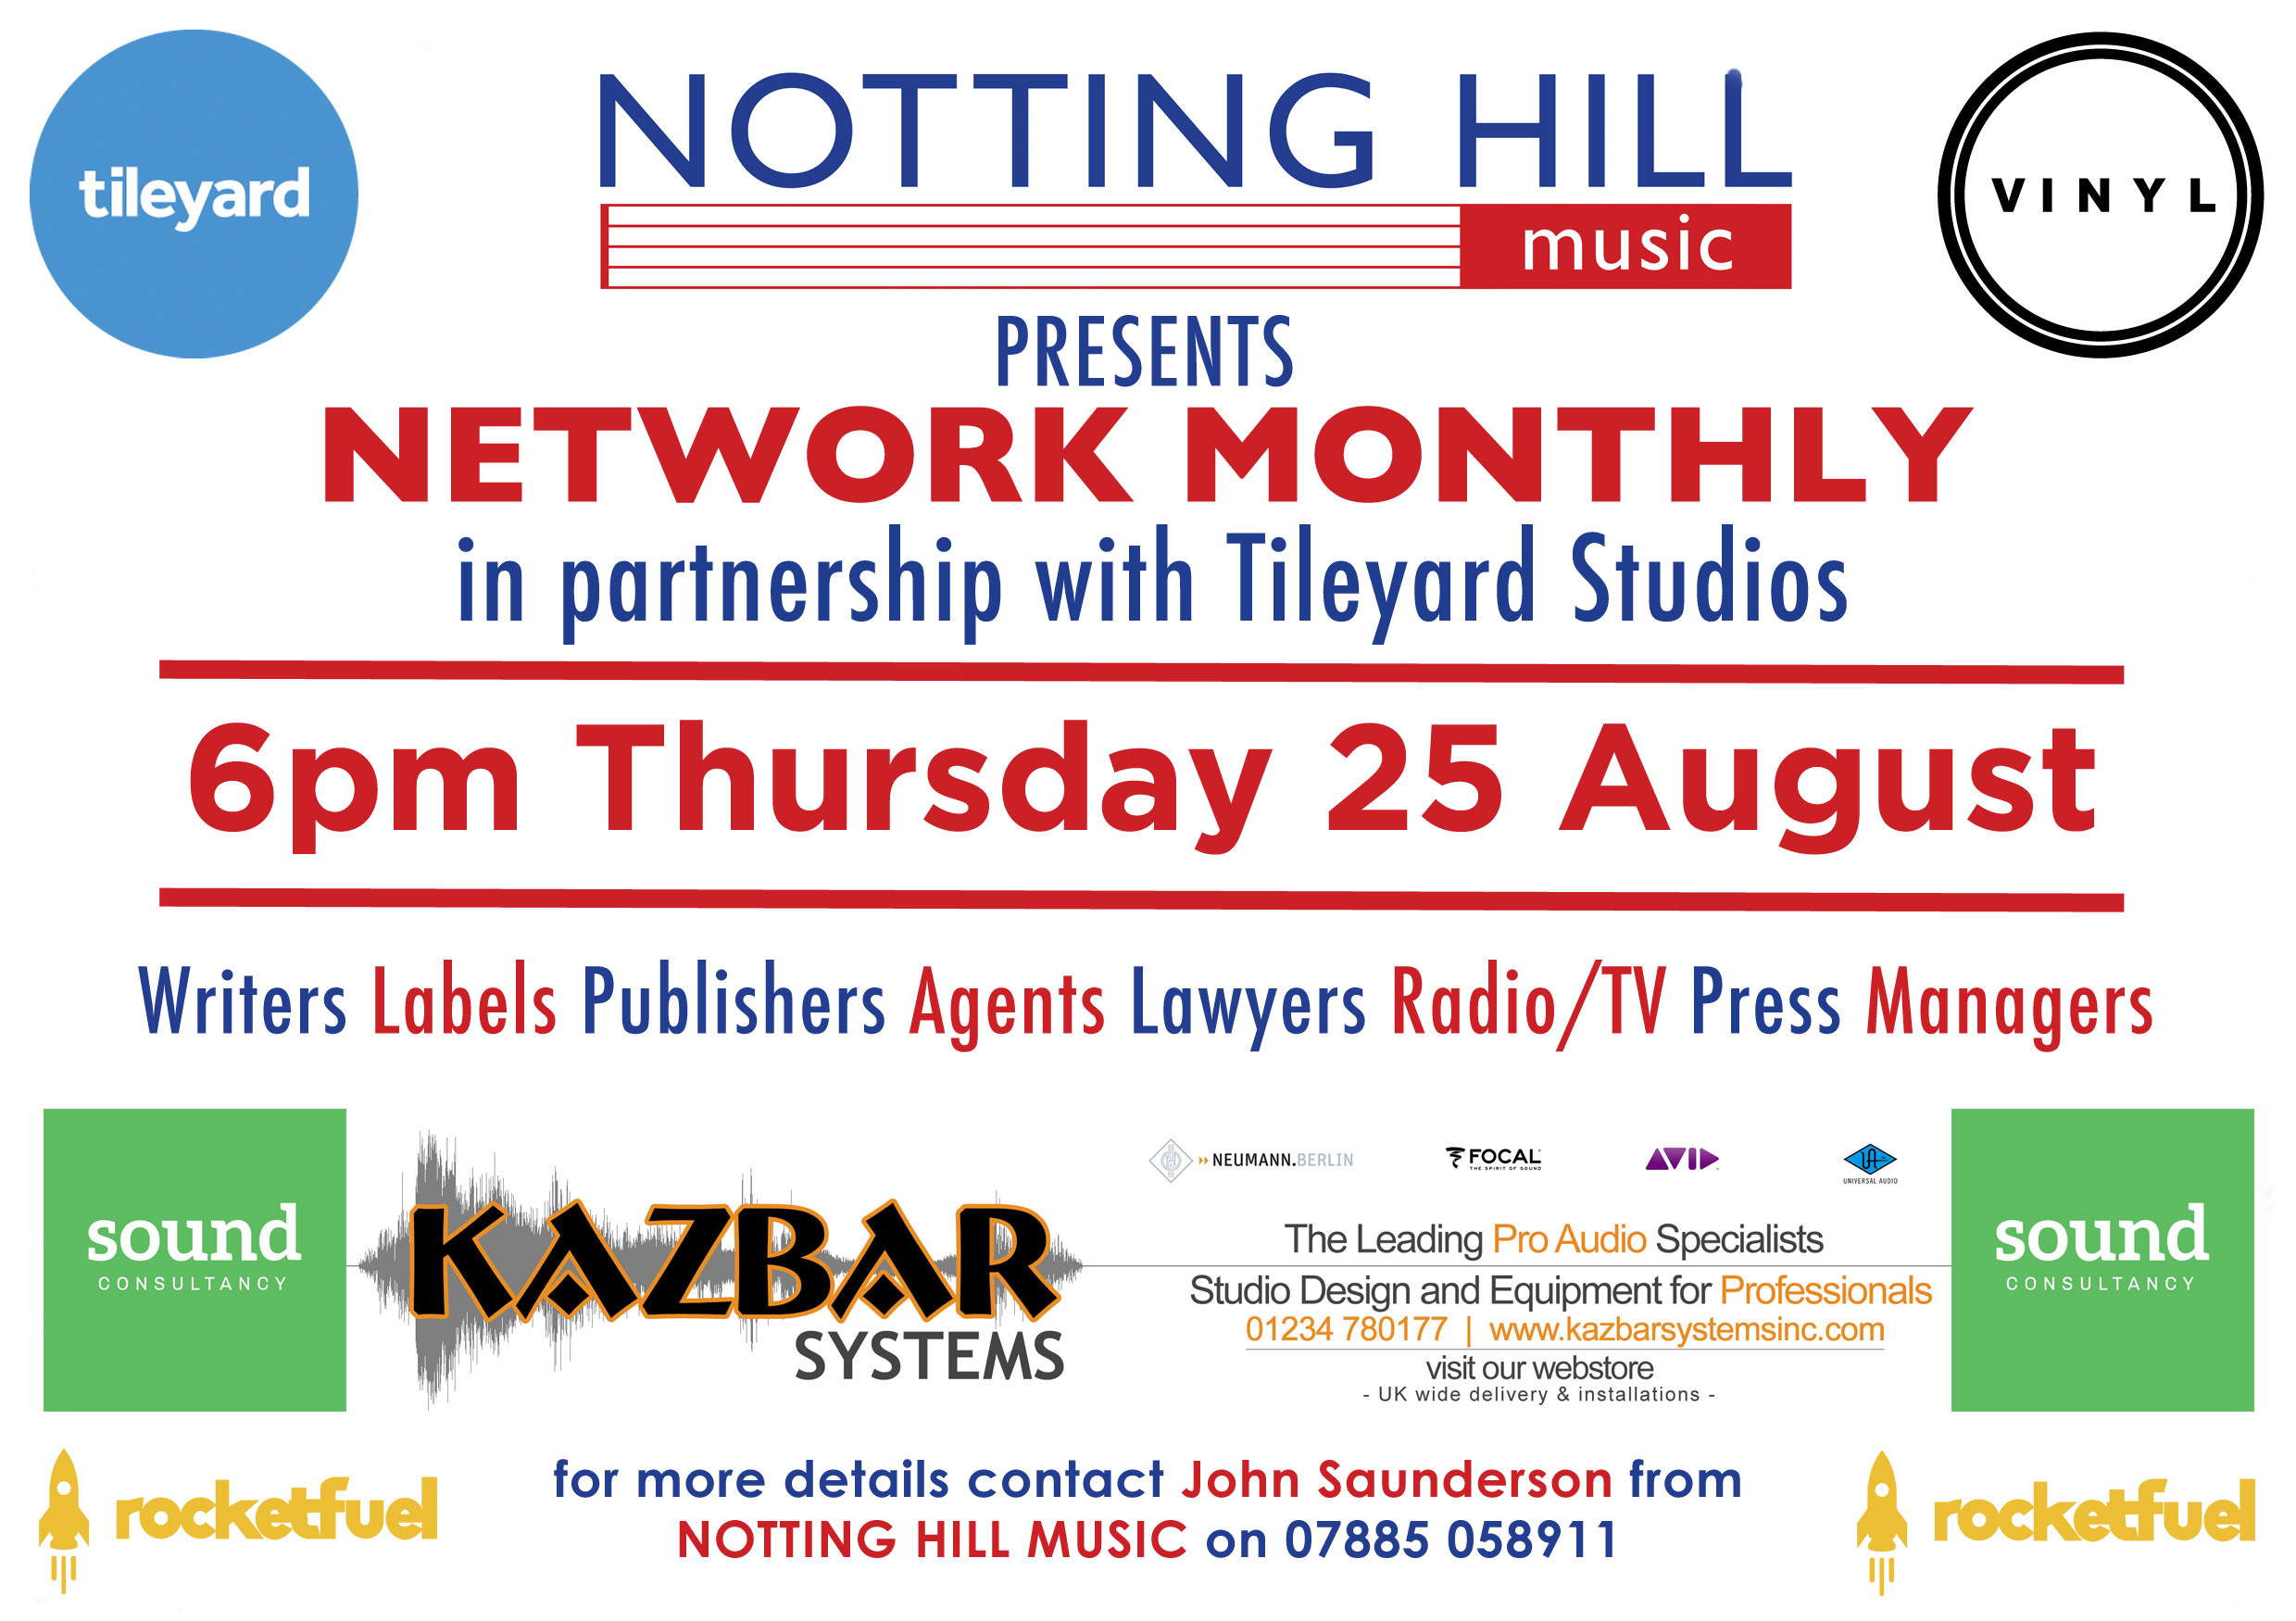 Networking evening will be held on Thursday 25 August 2016!